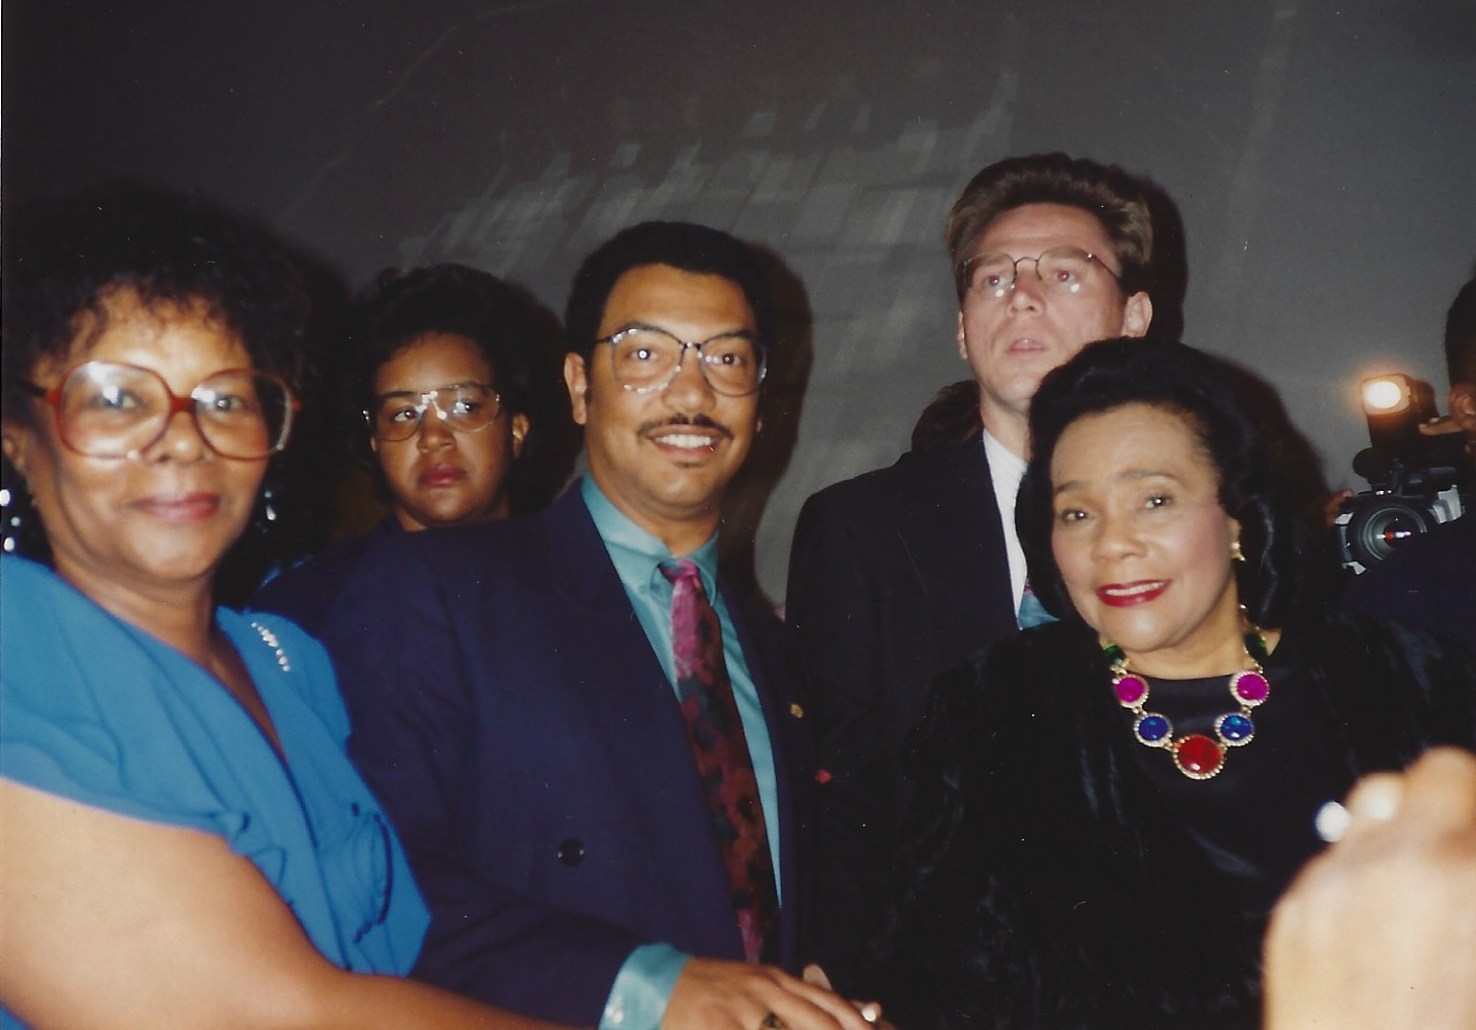 James Reede and Coretta Scott King in 1995 at a dinner celebrating Martin Luther King Day. Reede said he remembers meeting King as a child through his mother's activism work. Photo courtesy of James Reede.